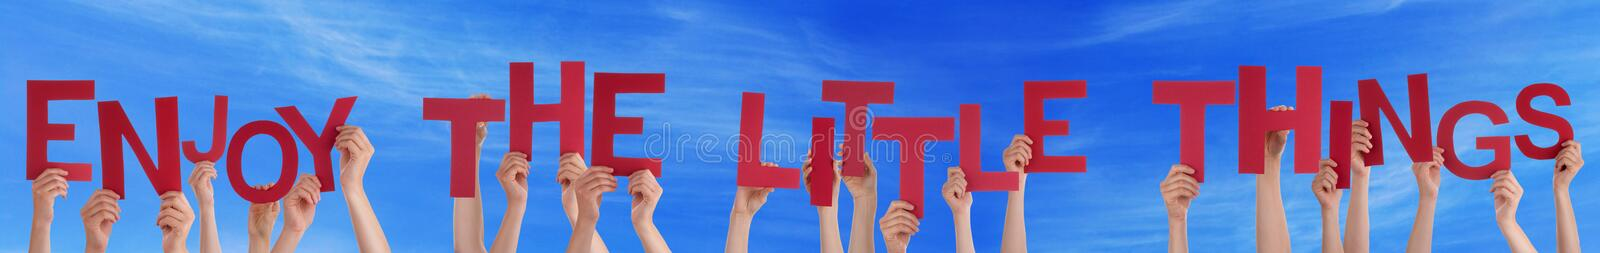 People Hands Holding Word Enjoy The Little Things Blue Sky. Many Caucasian People And Hands Holding Red Letters Or Characters Building The English Word Enjoy The stock photo